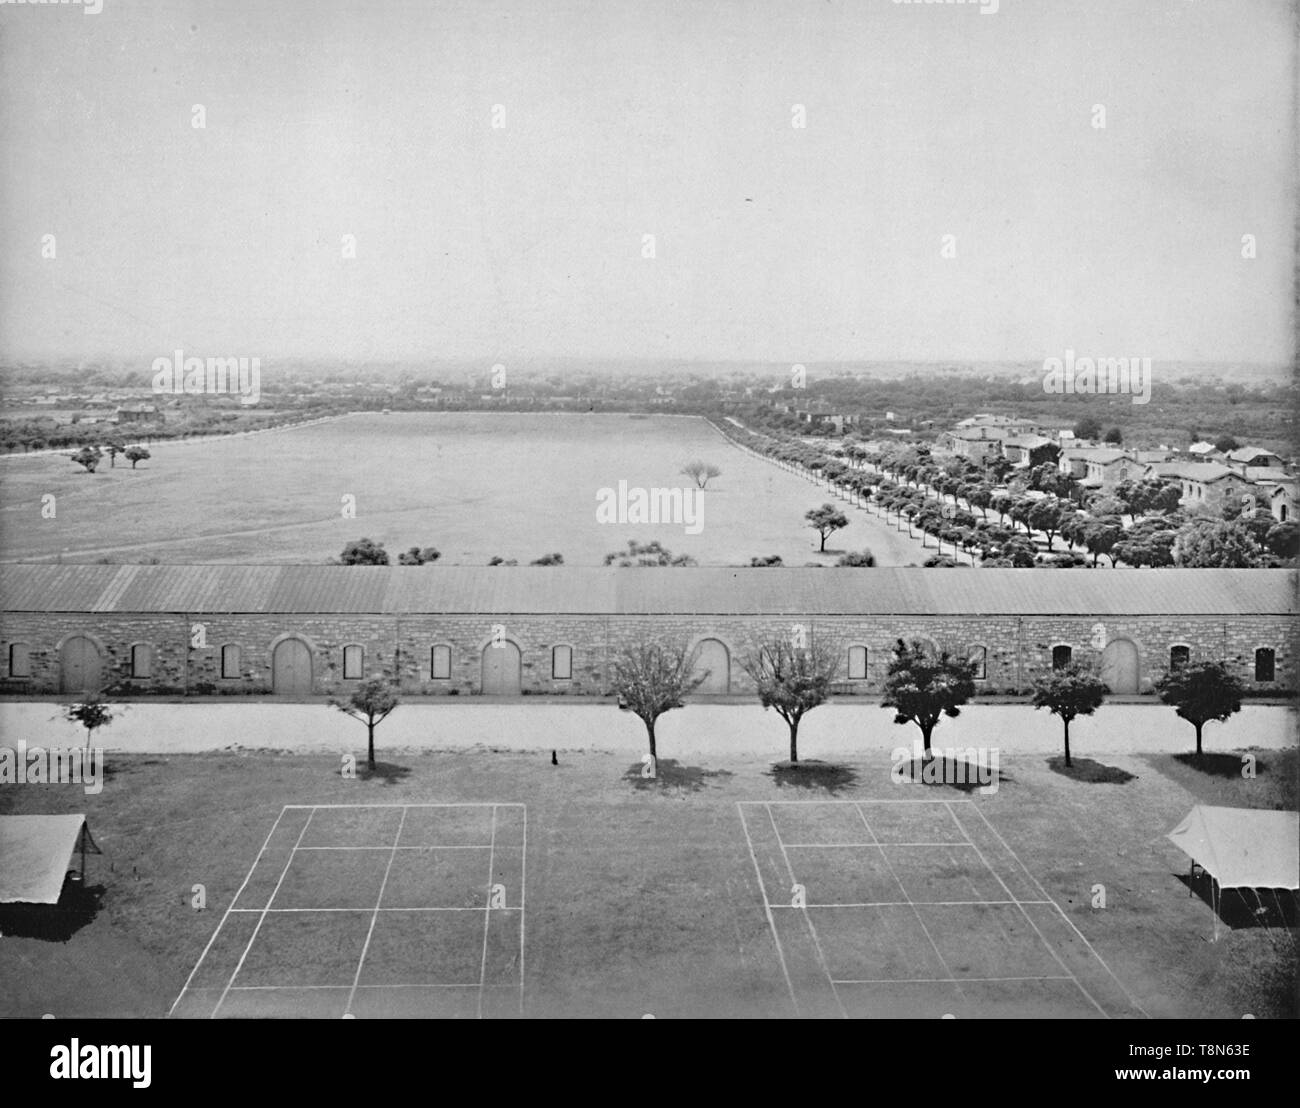 "'Parade Grounds, San Antonio, Texas', c1897. Fort Sam Houston is a U.S. Army post in San Antonio, Texas. Construction began in mid 1870s From ""A Tour Through the New World America"", by Prof. Geo. R. Cromwell. [C. N. Greig & Co., London, c1897] - Stock Image"